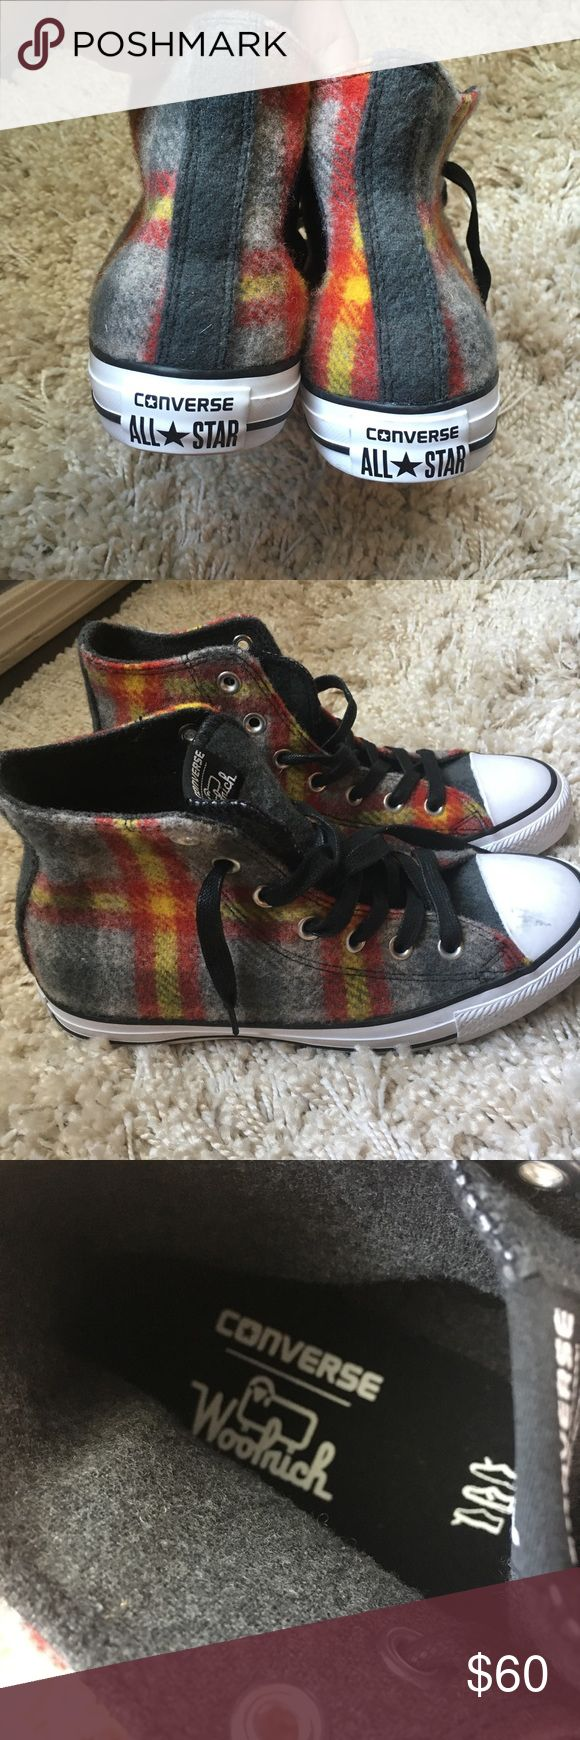 Converse Woolrich Unisex Men's 5.5 Women's 7.5 This converse is  used barely worn, no original Box, please take a good look on the picture as I capture the size and tag description.  This converse will surely keep your foot warm and still in style...Please like and share my item .. Converse Shoes Sneakers